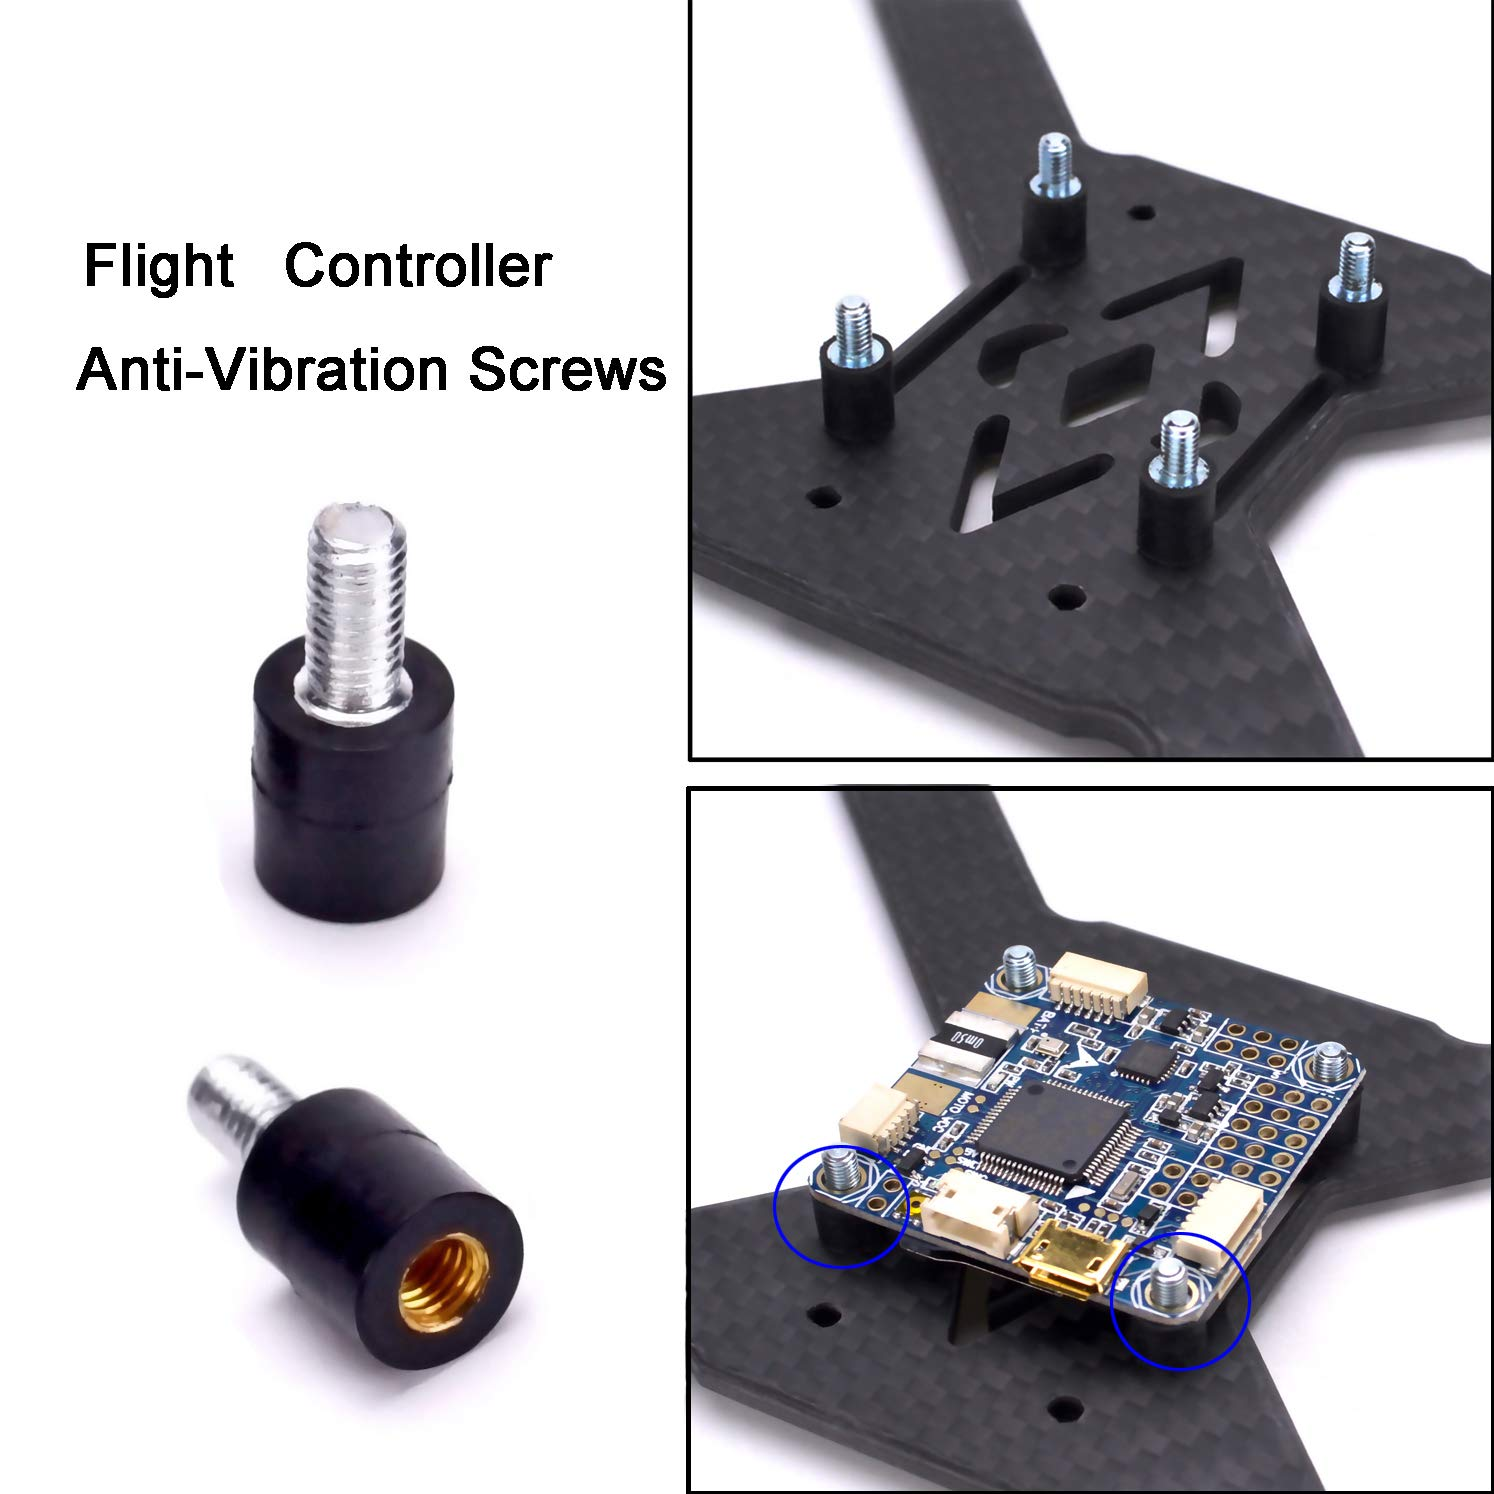 M3 Flight Controller Anti Vibration Fixed Screws Flying Hobby Sharing Agic Print Printing Circuit Boards With Mounting Hardware Standoffs Spacer For Naze32 Cc3d F3 F4 Toys Games